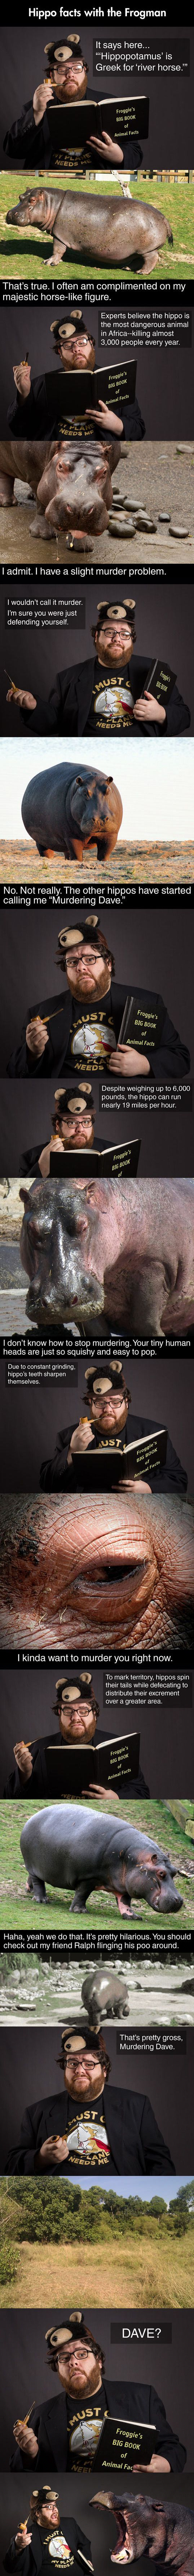 Hippo facts with the frogman  // funny pictures - funny photos - funny images - funny pics - funny quotes - #lol #humor #funnypictures